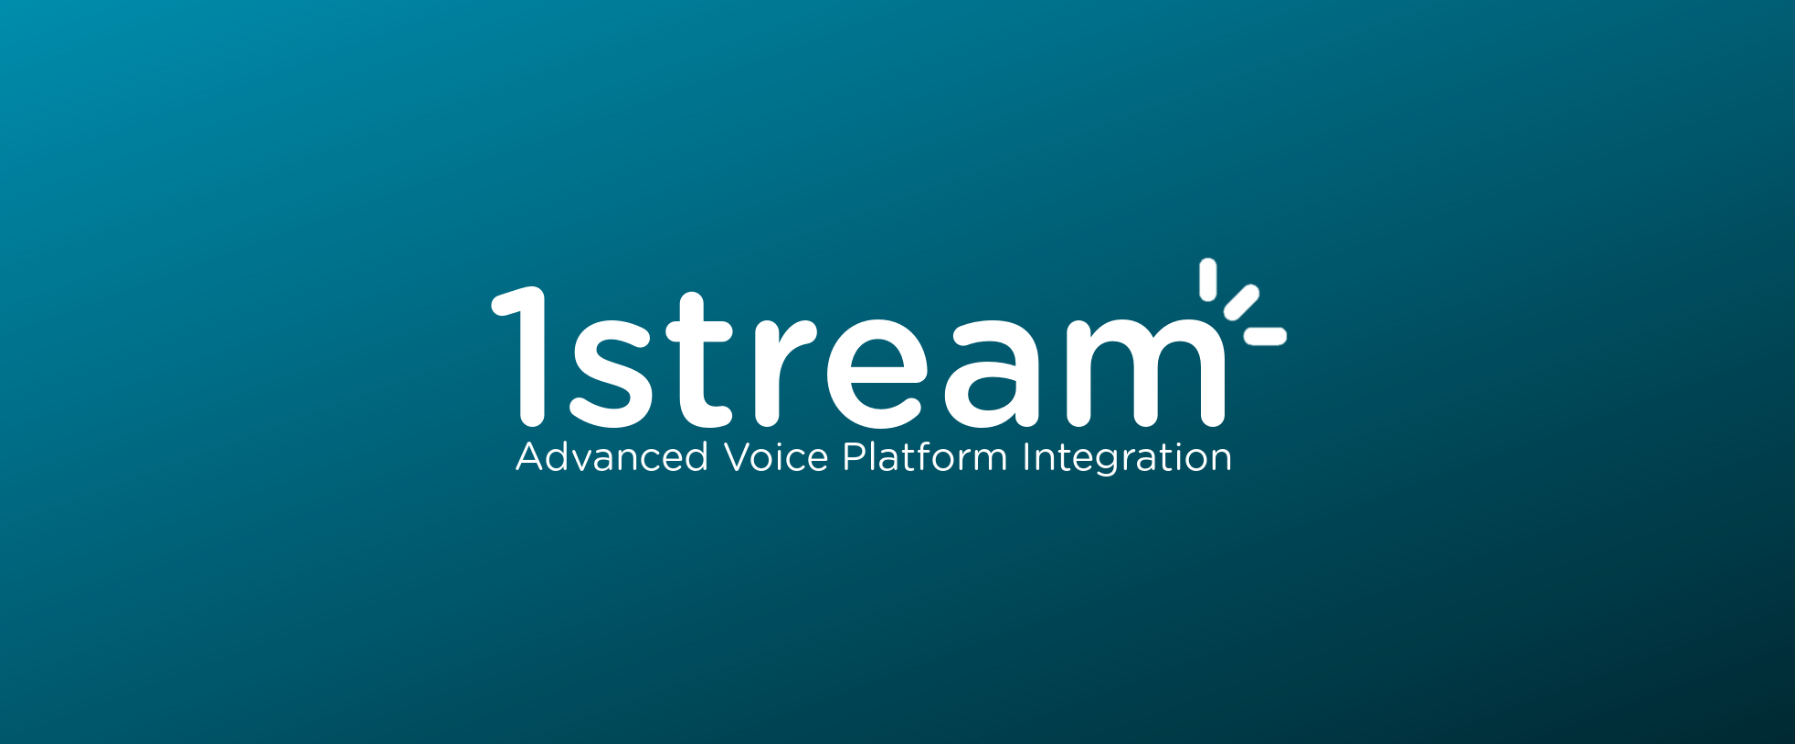 1stream product page image2